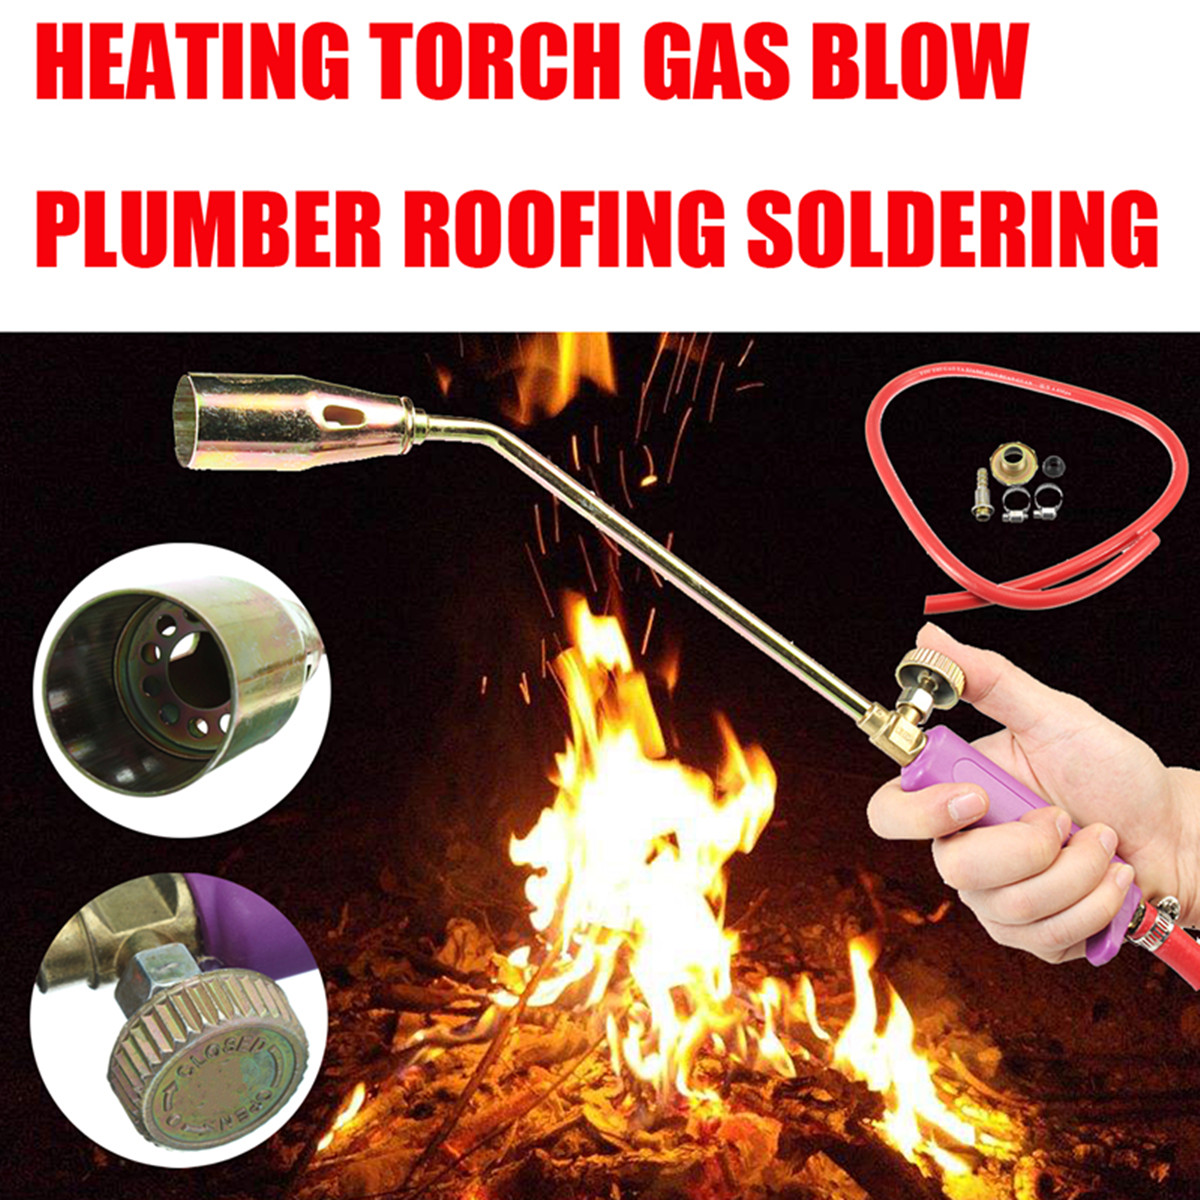 35Type Durable Steel Nozzle Propane Torch Roofing Soldering Heating Gun Flame Torch